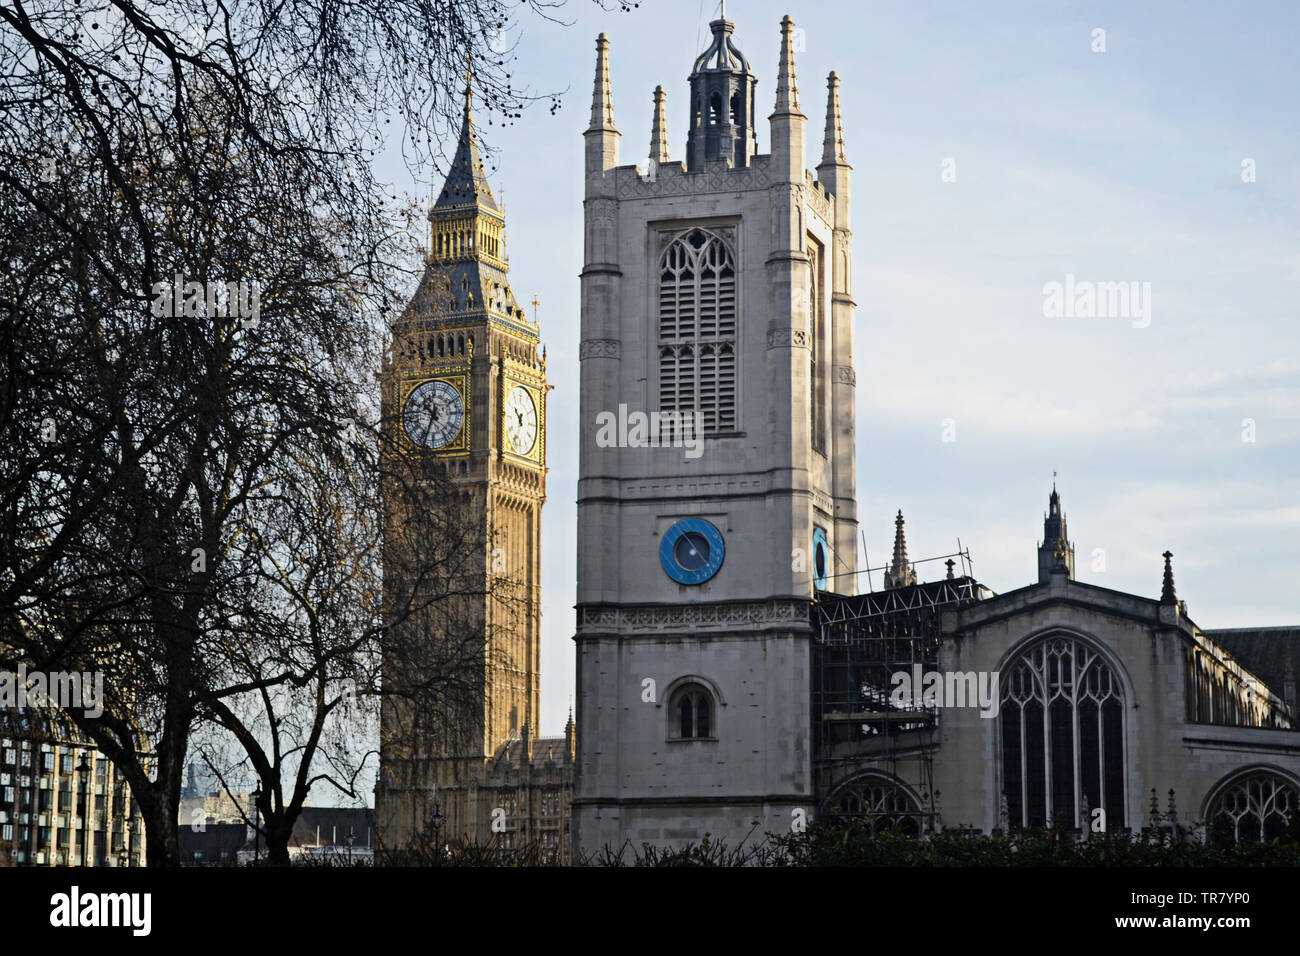 Big Ben bezeichnet die mit 13,5 t Gewicht schwerste der fünf Glocken des berühmten uhrturms am Palace of Westminster in London. Westminster Abbey. Stockbild